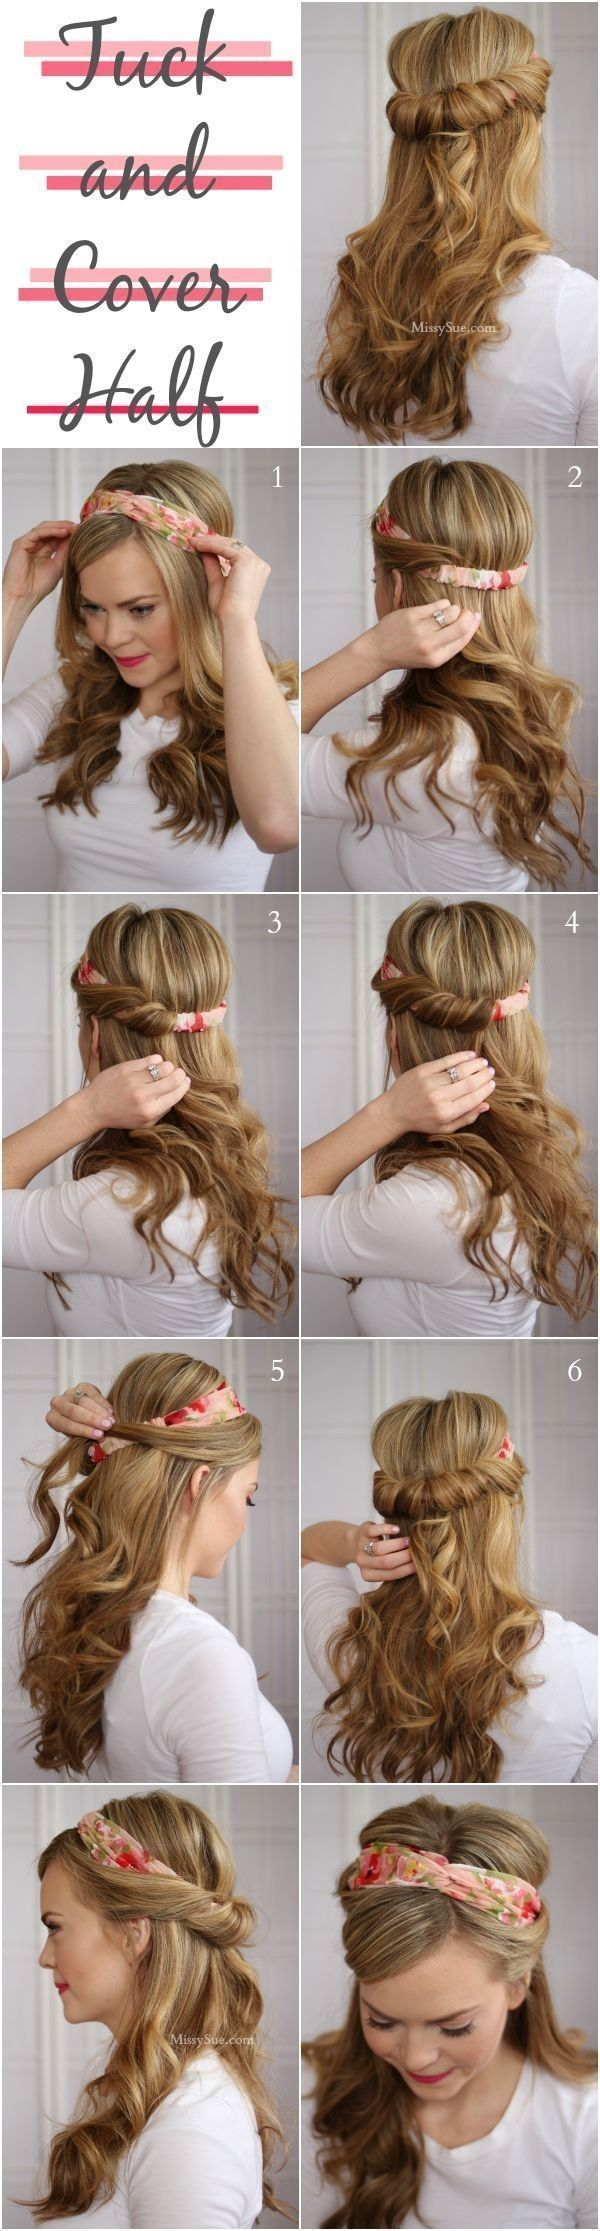 hairstyles for work easy hairstyles medium hair and make up